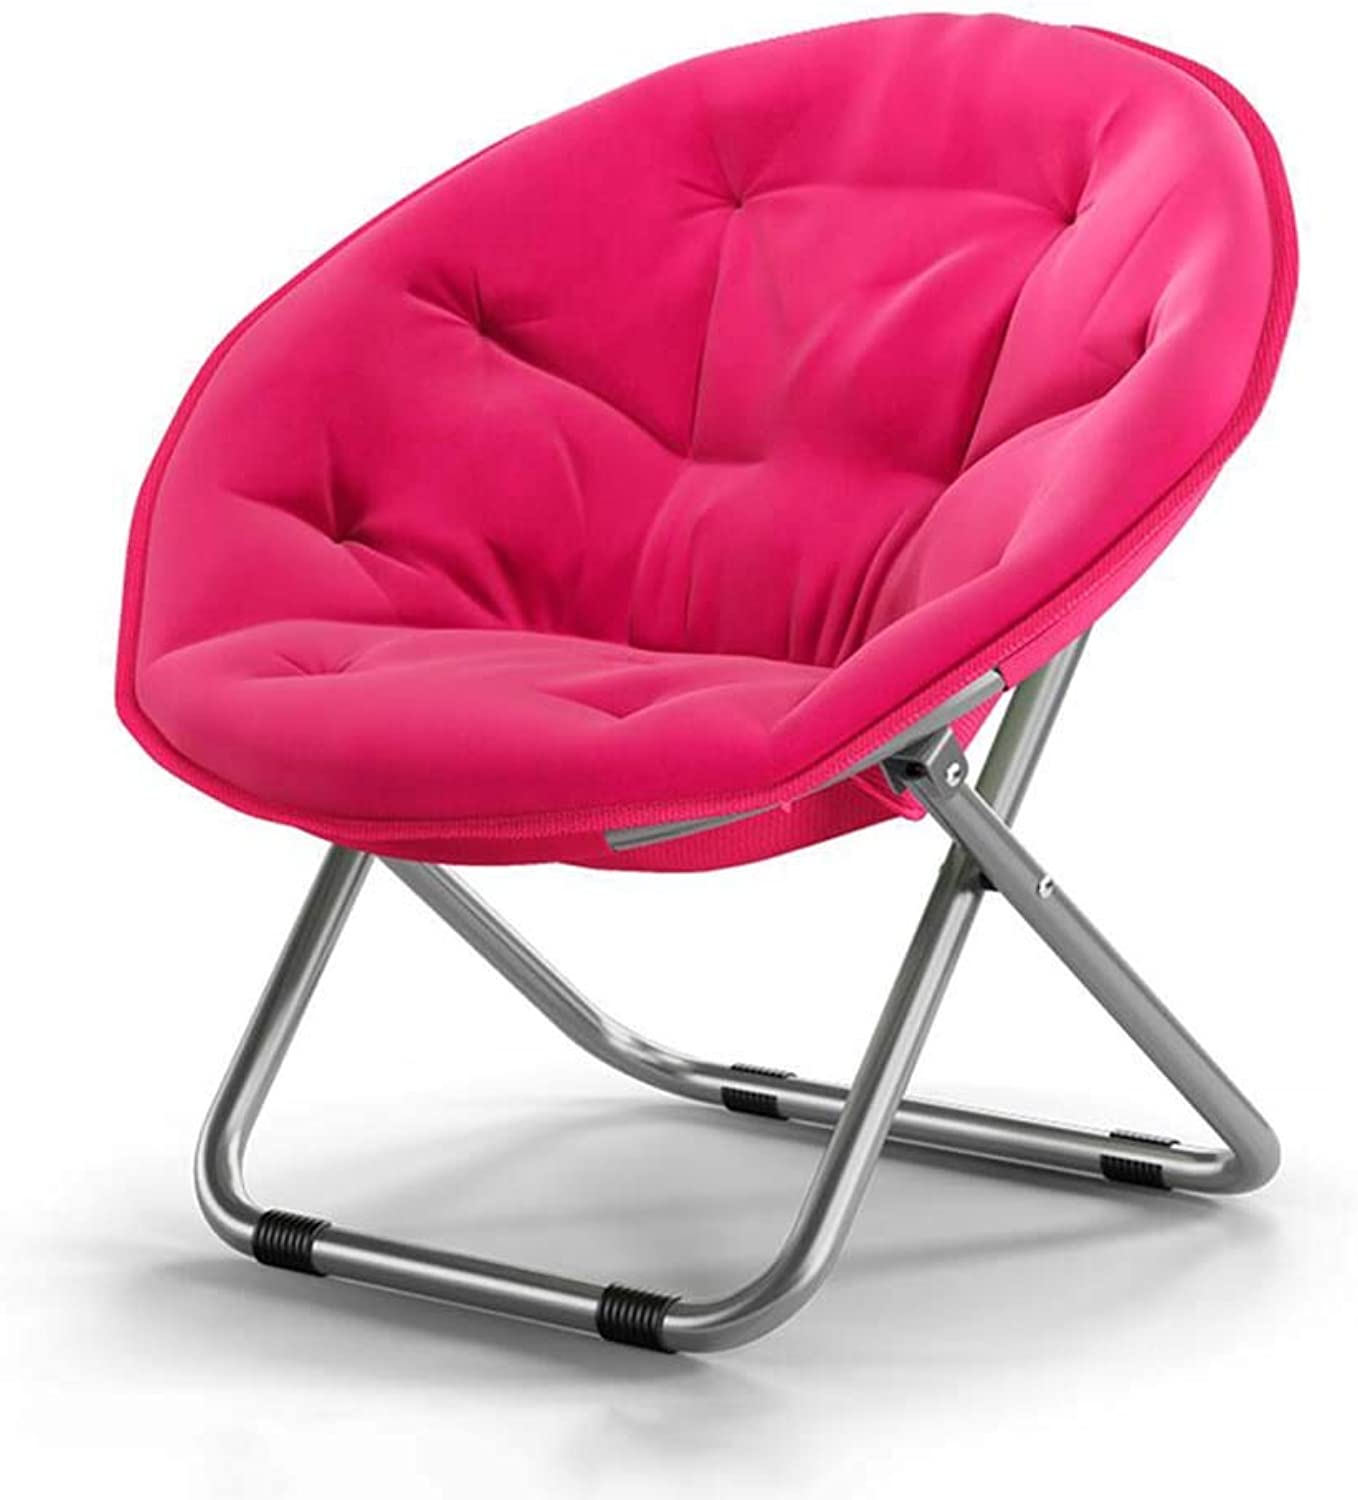 Large Adult Moon Chair Sun Lounger Lazy Chair Recliner Folding Chair Round Chair Sofa Chair,Pink